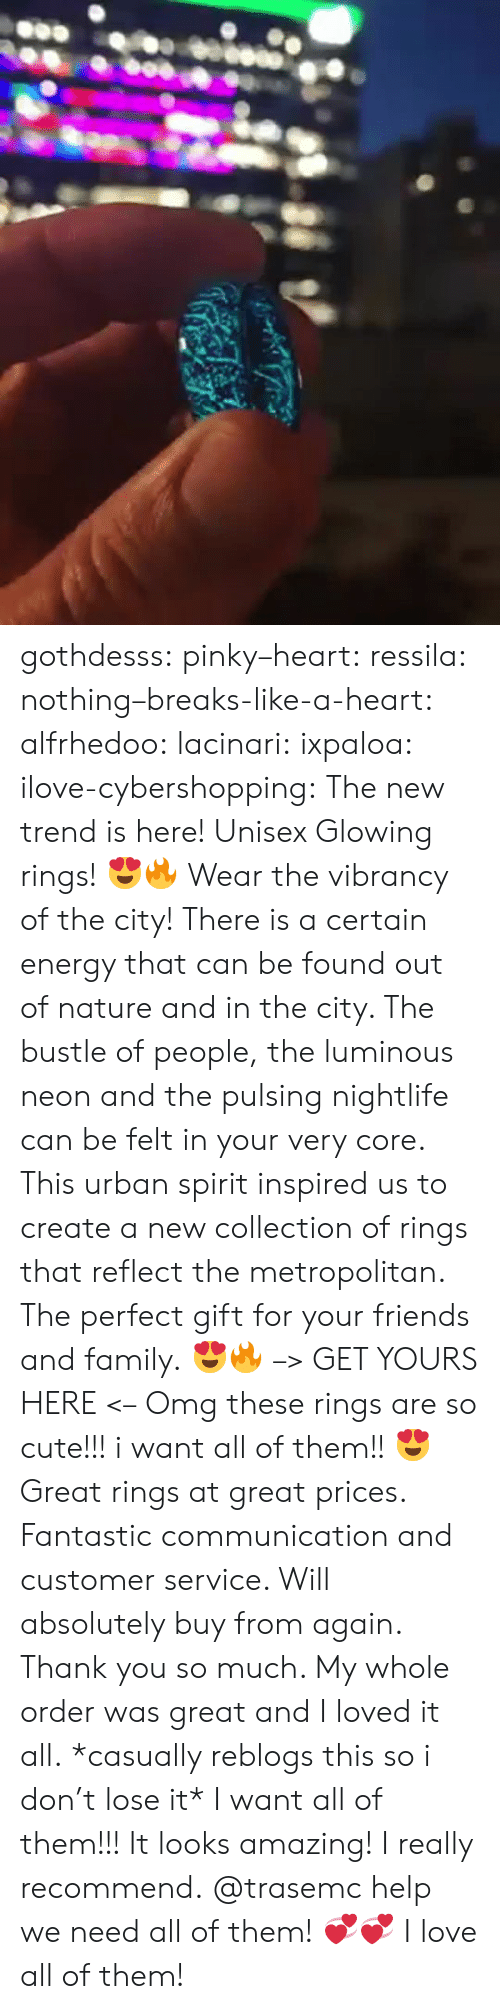 nightlife: gothdesss:  pinky–heart: ressila:  nothing–breaks-like-a-heart:  alfrhedoo:  lacinari:  ixpaloa:  ilove-cybershopping:  The new trend is here! Unisex Glowing rings! 😍🔥 Wear the vibrancy of the city! There is a certain energy that can be found out of nature and in the city. The bustle of people, the luminous neon and the pulsing nightlife can be felt in your very core. This urban spirit inspired us to create a new collection of rings that reflect the metropolitan. The perfect gift for your friends and family.😍🔥 –> GET YOURS HERE <–  Omg these rings are so cute!!! i want all of them!!😍  Great rings at great prices. Fantastic communication and customer service. Will absolutely buy from again. Thank you so much. My whole order was great and I loved it all.  *casually reblogs this so i don't lose it*  I want all of them!!!  It looks amazing! I really recommend.  @trasemc help we need all of them!💞💞  I love all of them!